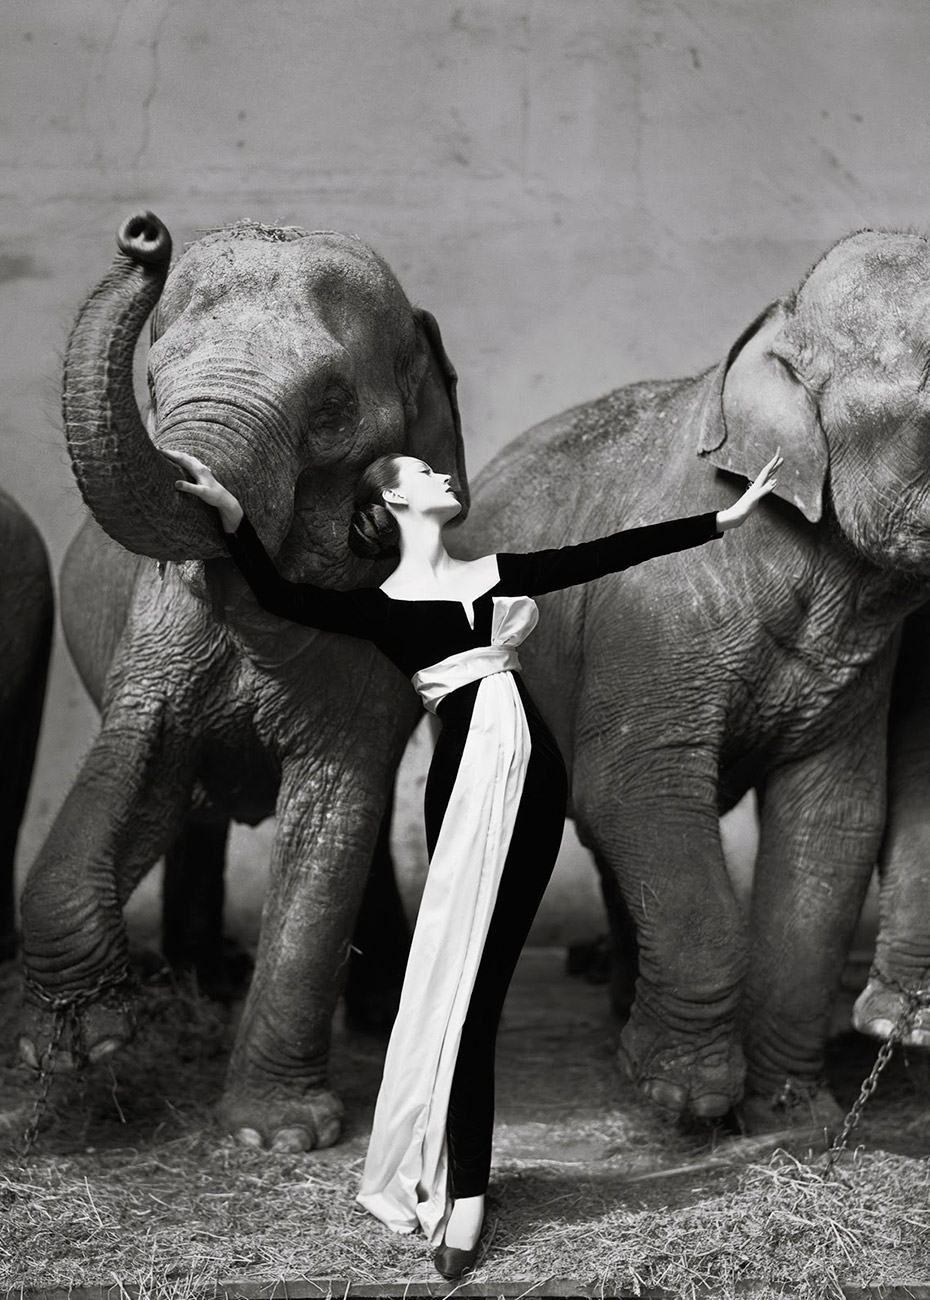 Dovima-with-elephants,-Evening-dress-by-Dior,-Cirque-d'Hiver,-Paris,-August-1955